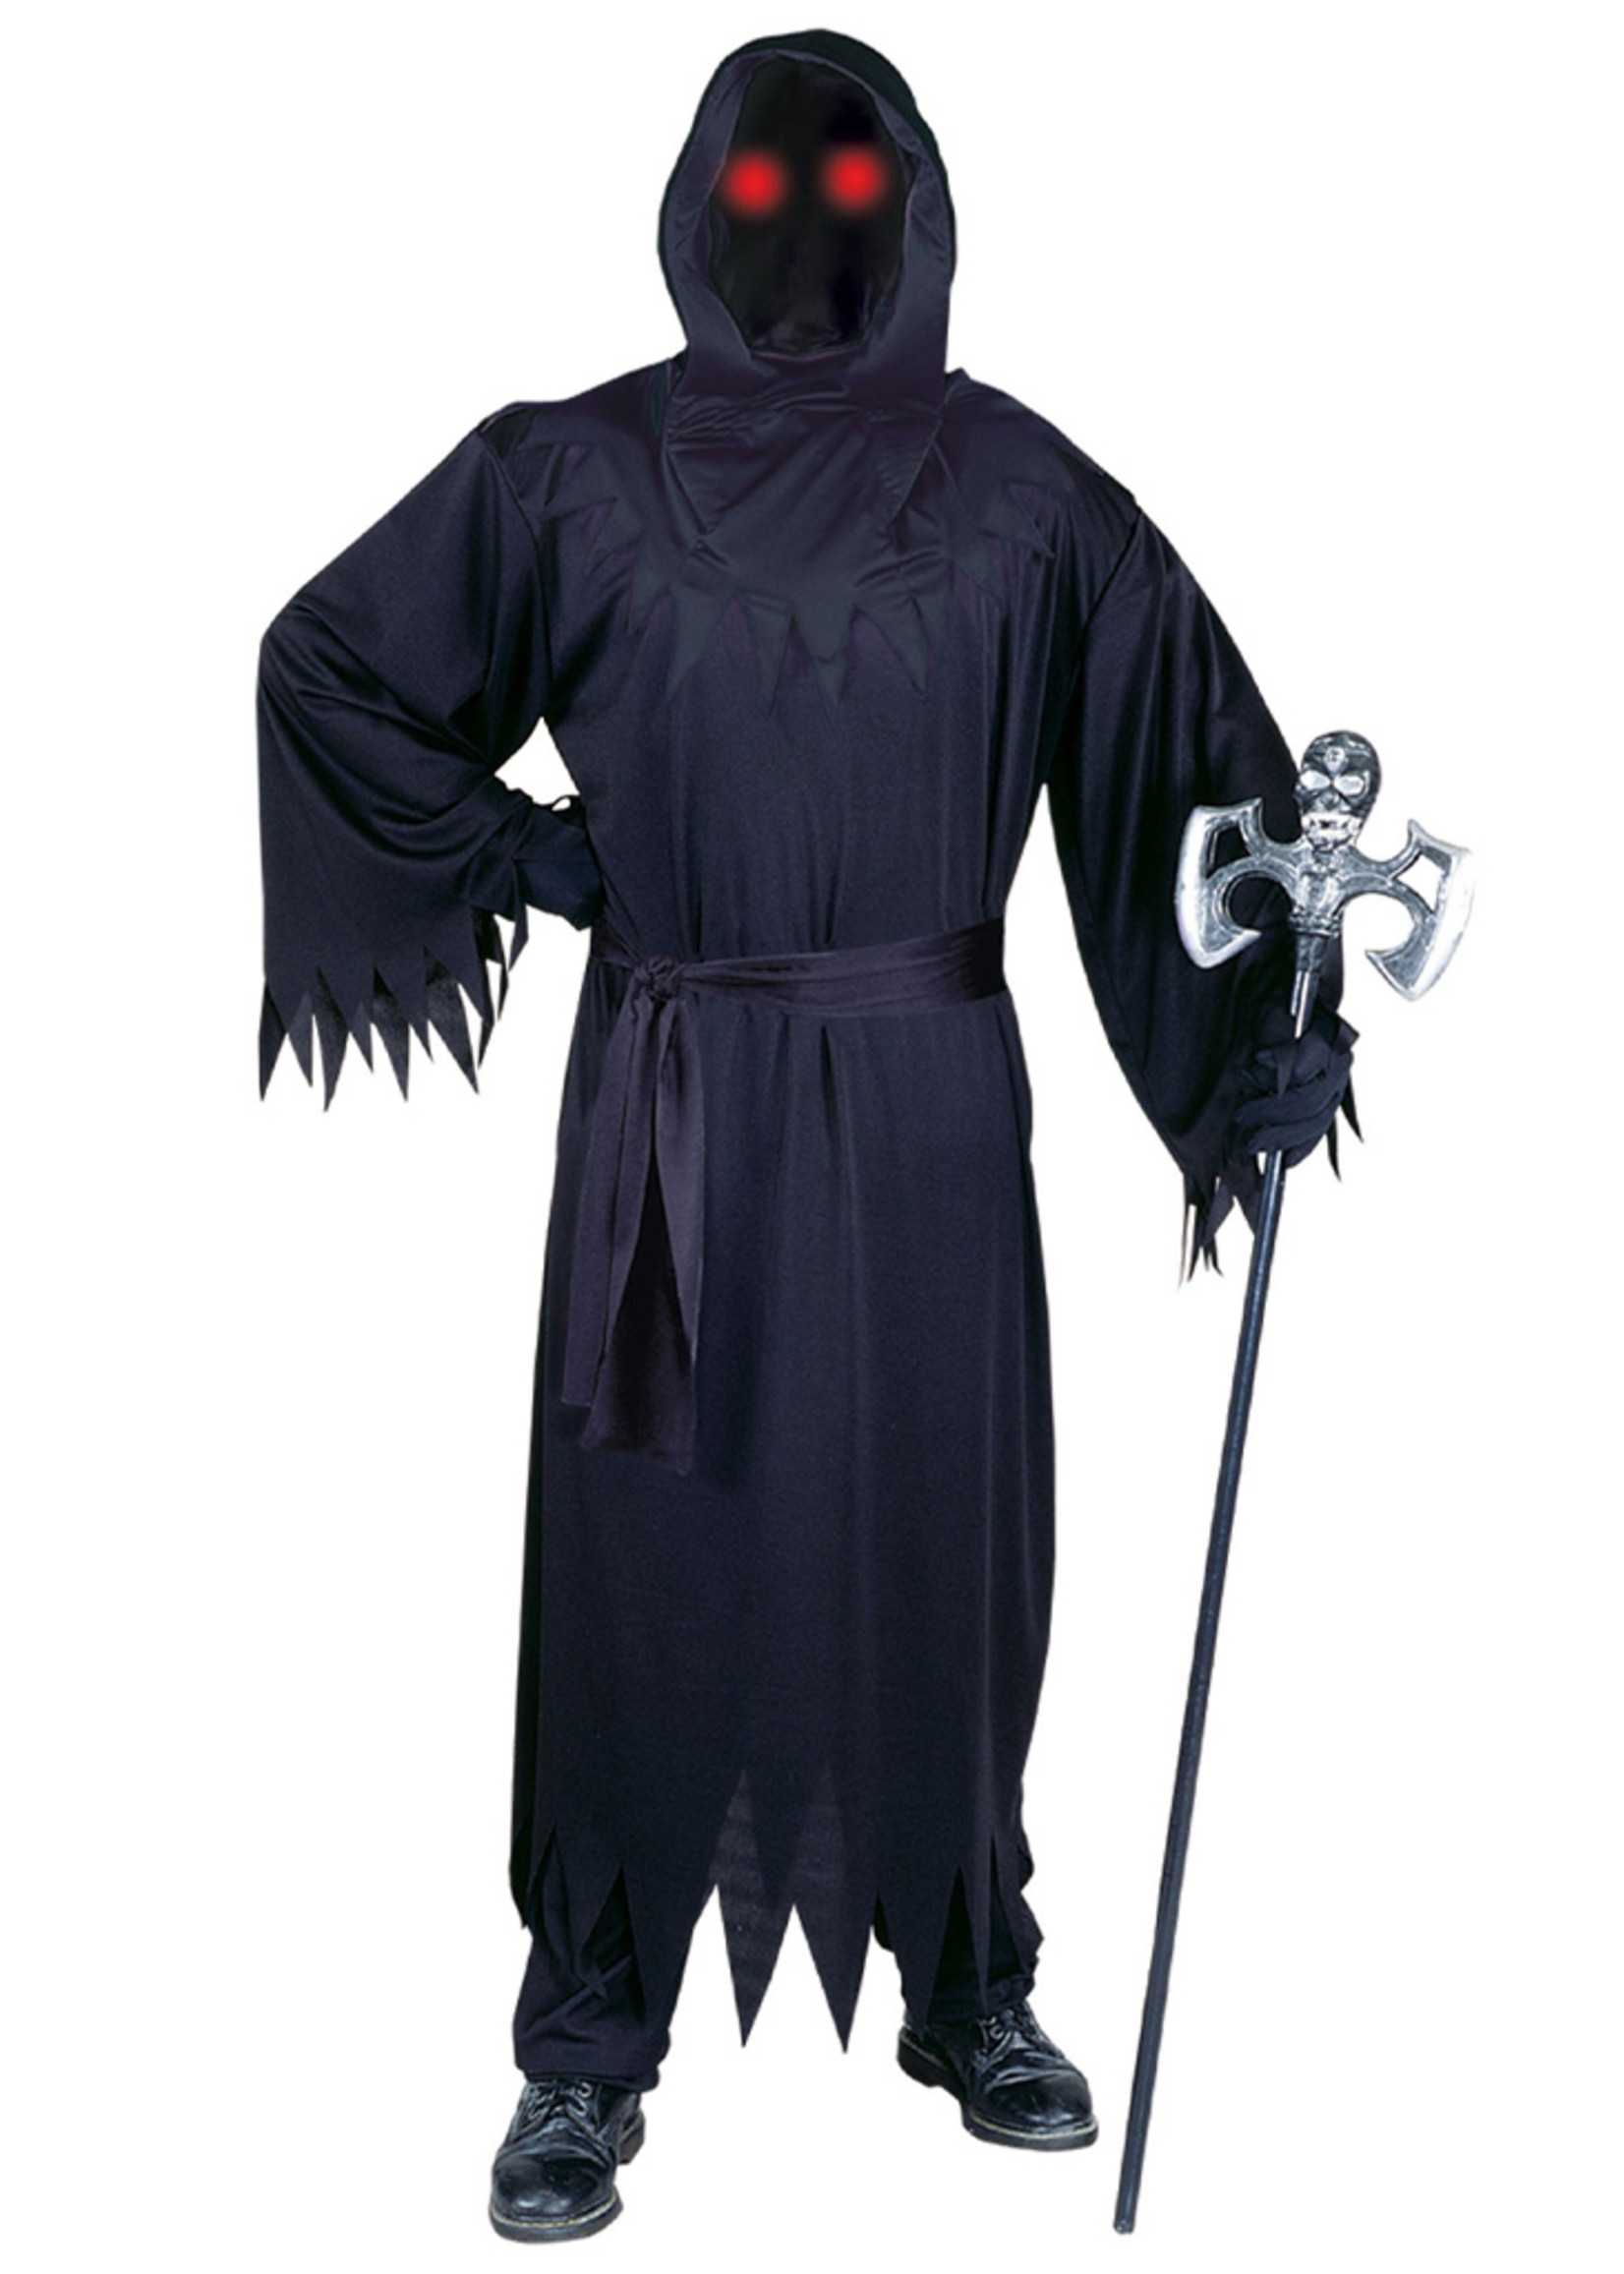 FUN WORLD Fade In/Out Unknown Phantom Costume - Men's